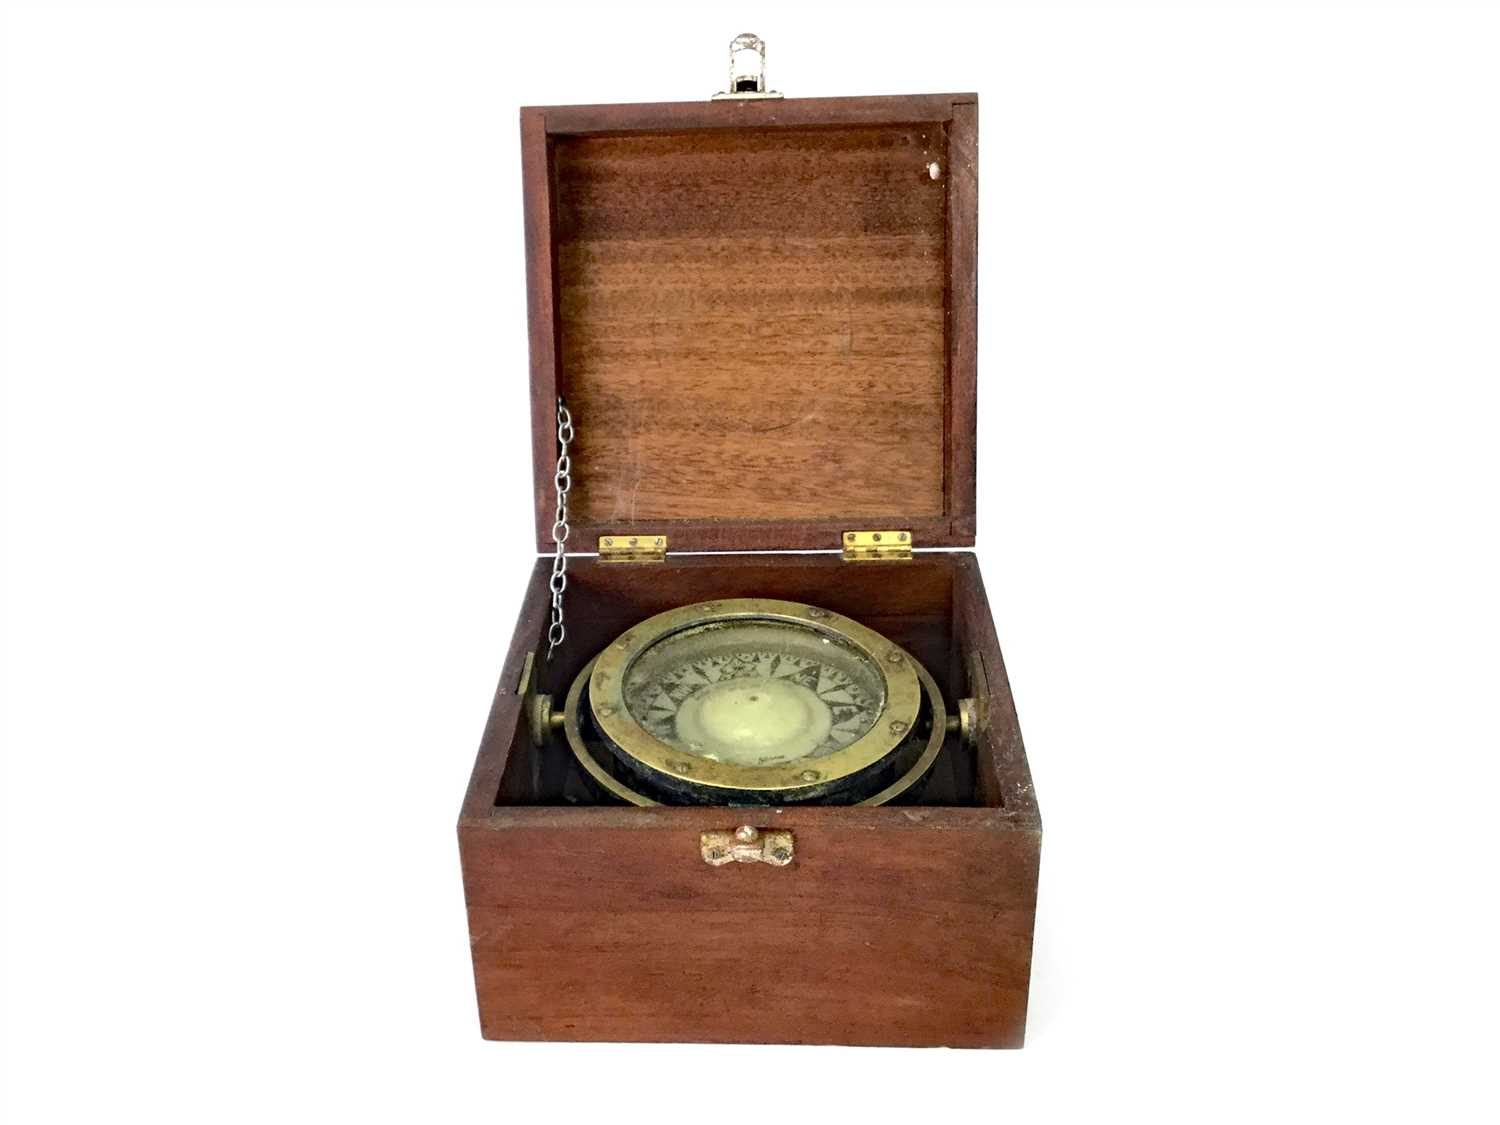 Lot 1398-AN EARLY 20TH CENTURY MARINE COMPASS  BY ROBB MOORE & NEIL LTD.